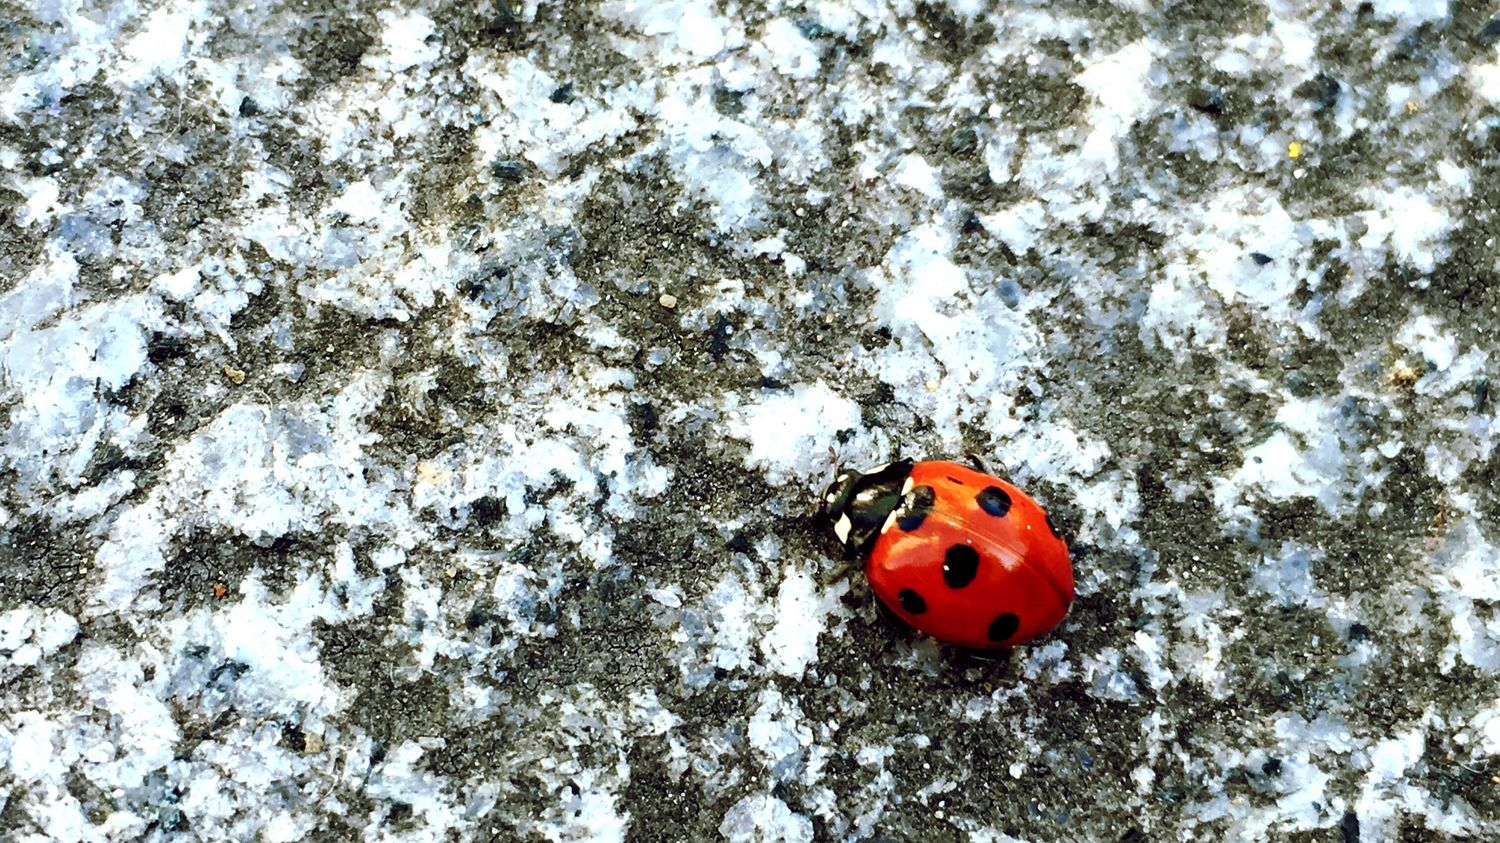 Ladybird Ladybug Spots Red Red Insect Littlelegs A Bugs Life Beautiful Beautiful Insect Camera Is My Eye Iphone6 IPhone Photography Iphoneonly Iphonephotography IPhoneography Pavement Pathway Nature's Diversities